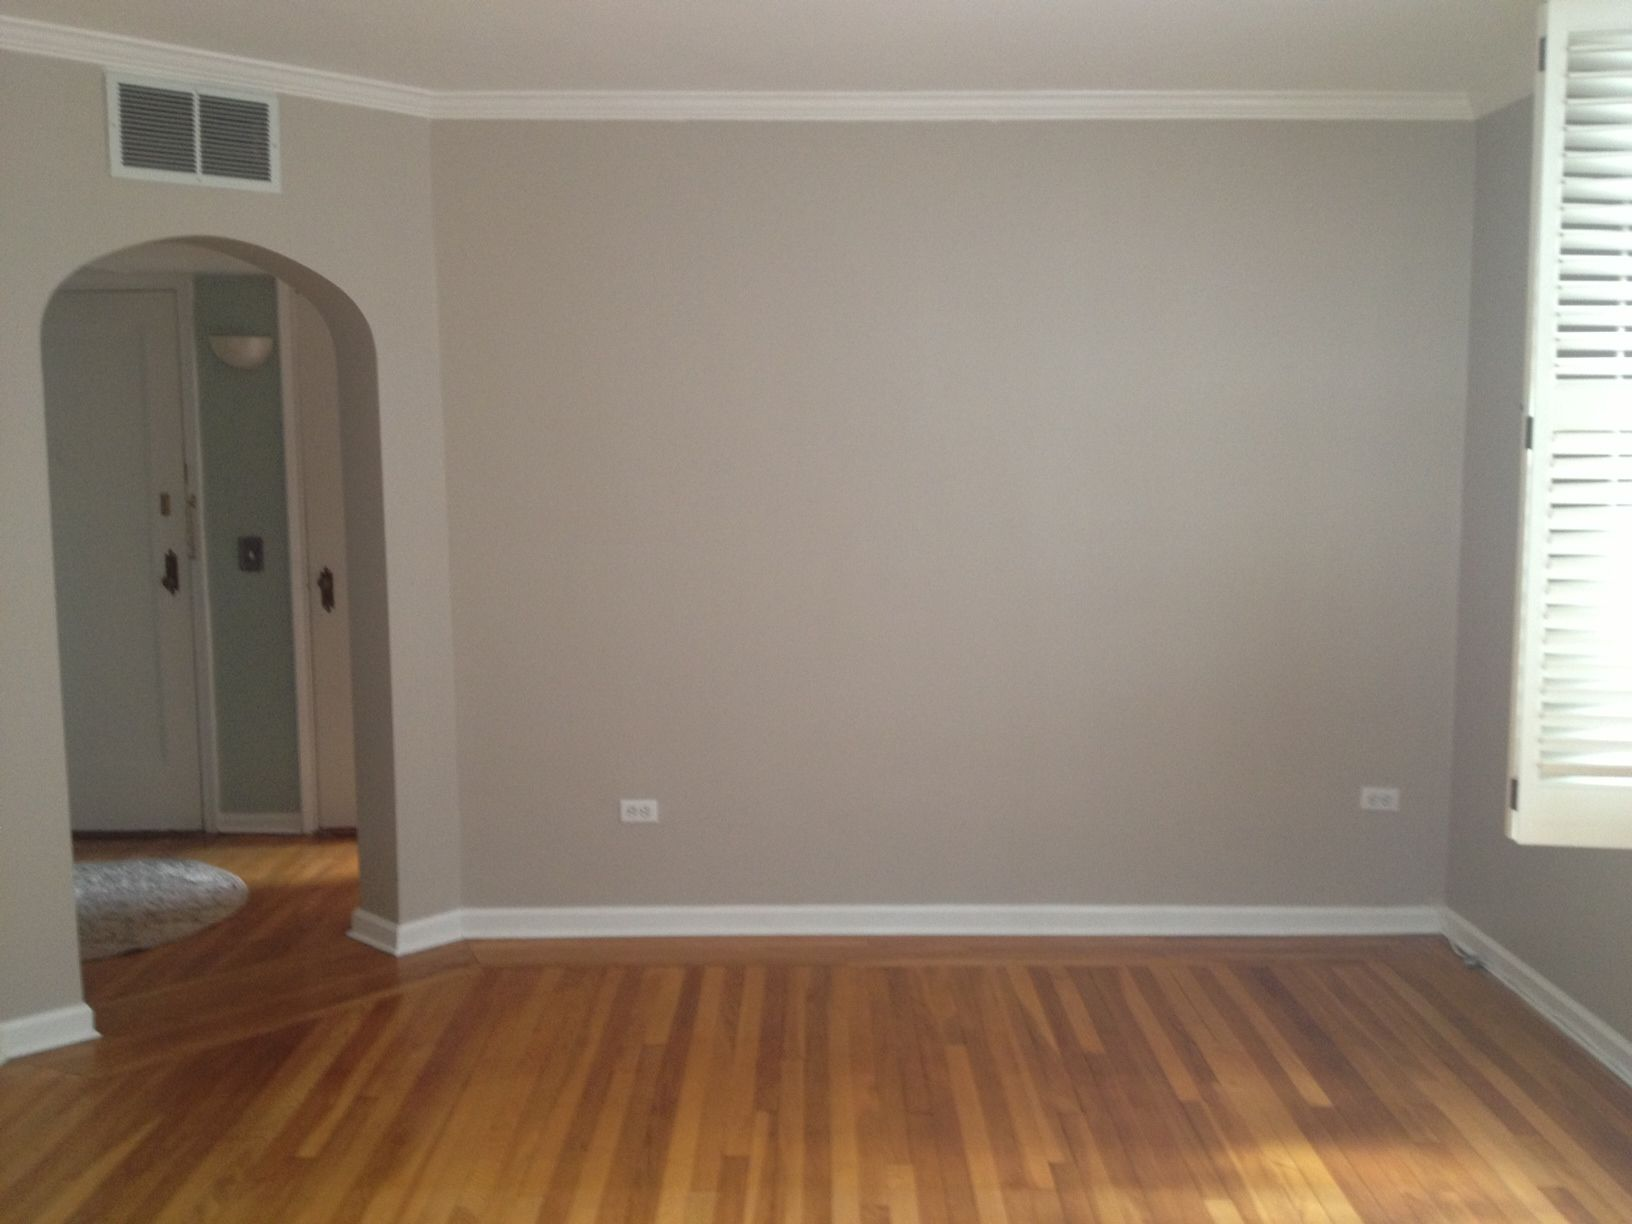 Benjamin Moore Smokey Taupe Paint Colors And Paint How To 39 S Pinterest Benjamin Moore